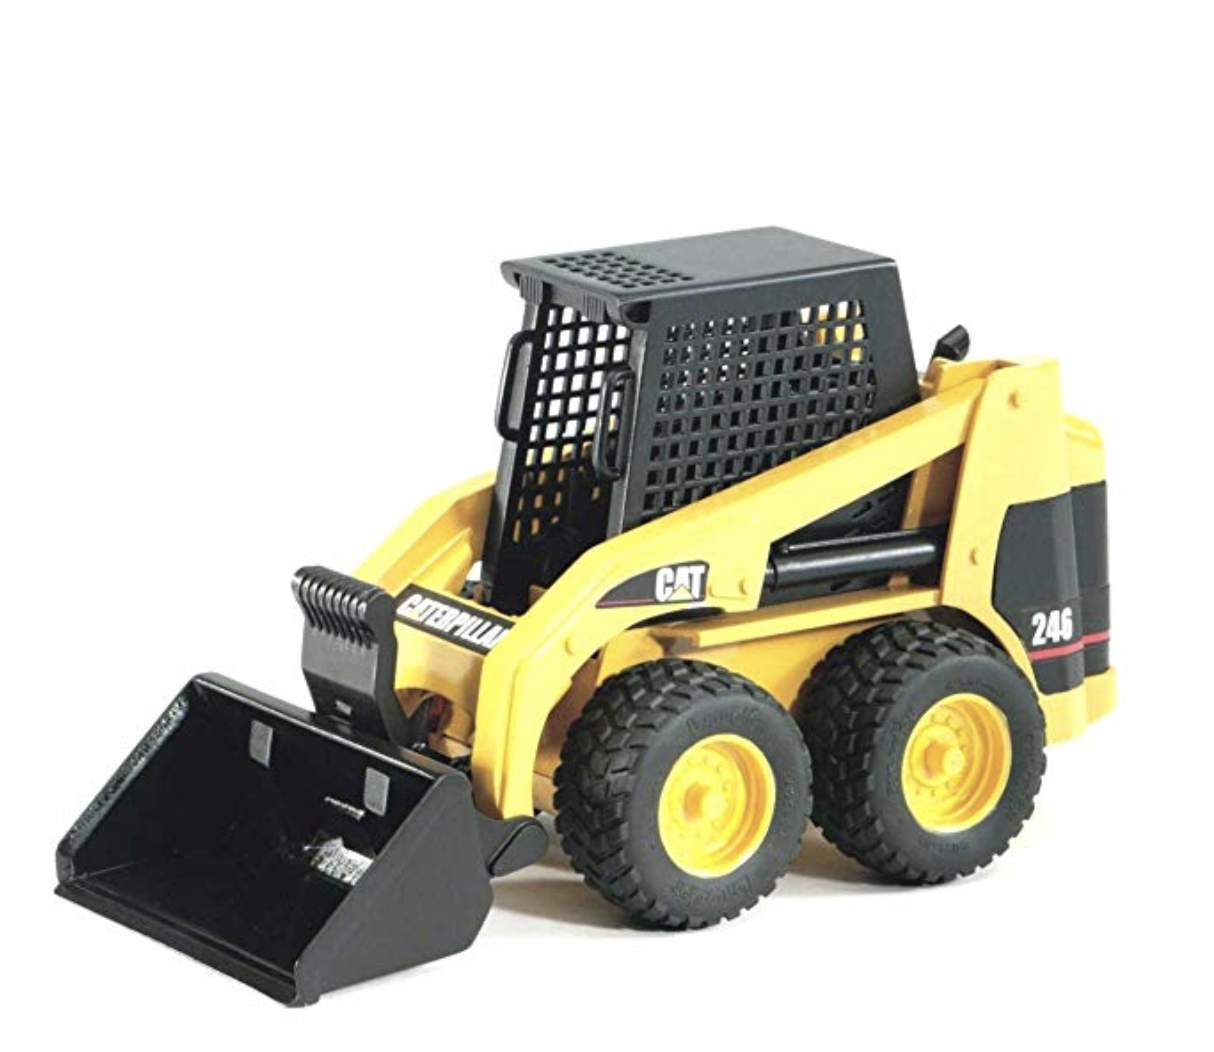 Bruger skid cat loader - I'm probably late to the game but only discovered Bruder's recently. They are exact replicas and are built to last years. They go from sandbox to the bath. Virtually indestructible.